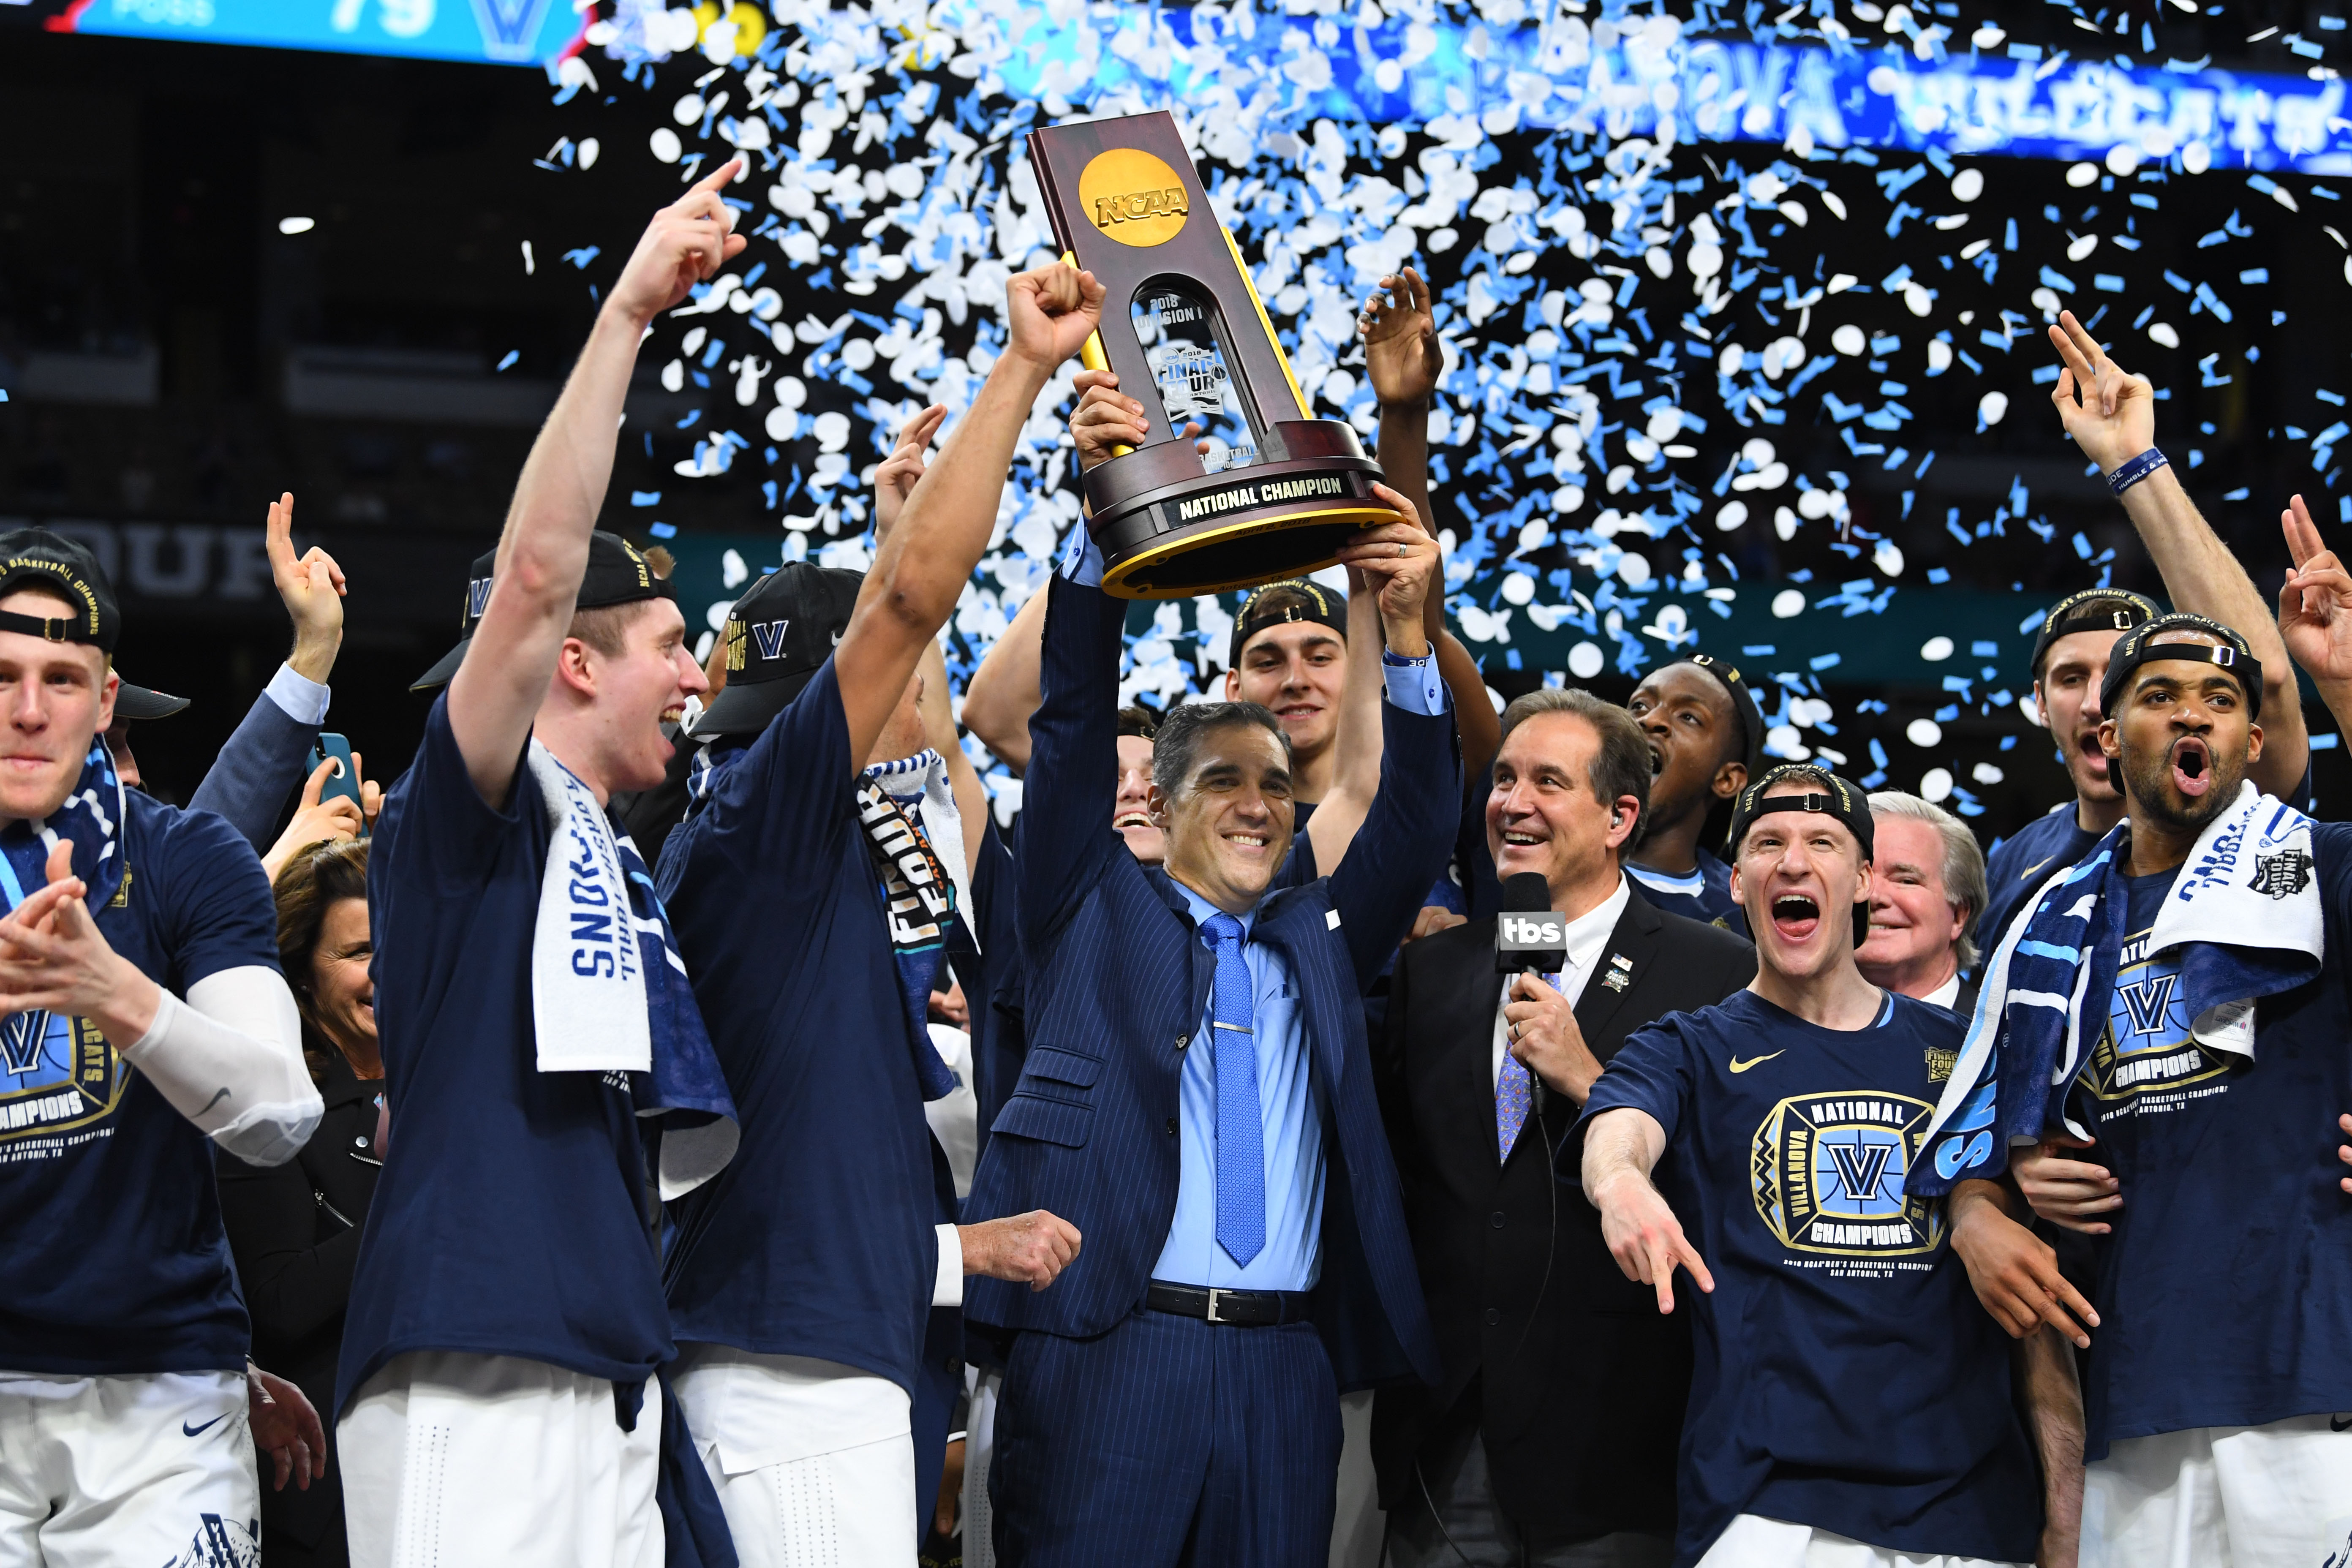 Apr 2, 2018; San Antonio, TX, USA; Villanova Wildcats head coach Jay Wright hoists the national championship trophy after defeating the Michigan Wolverines 79-62 in the championship game of the 2018 men's Final Four at Alamodome. Mandatory Credit: Robert Deutsch-USA TODAY Sports